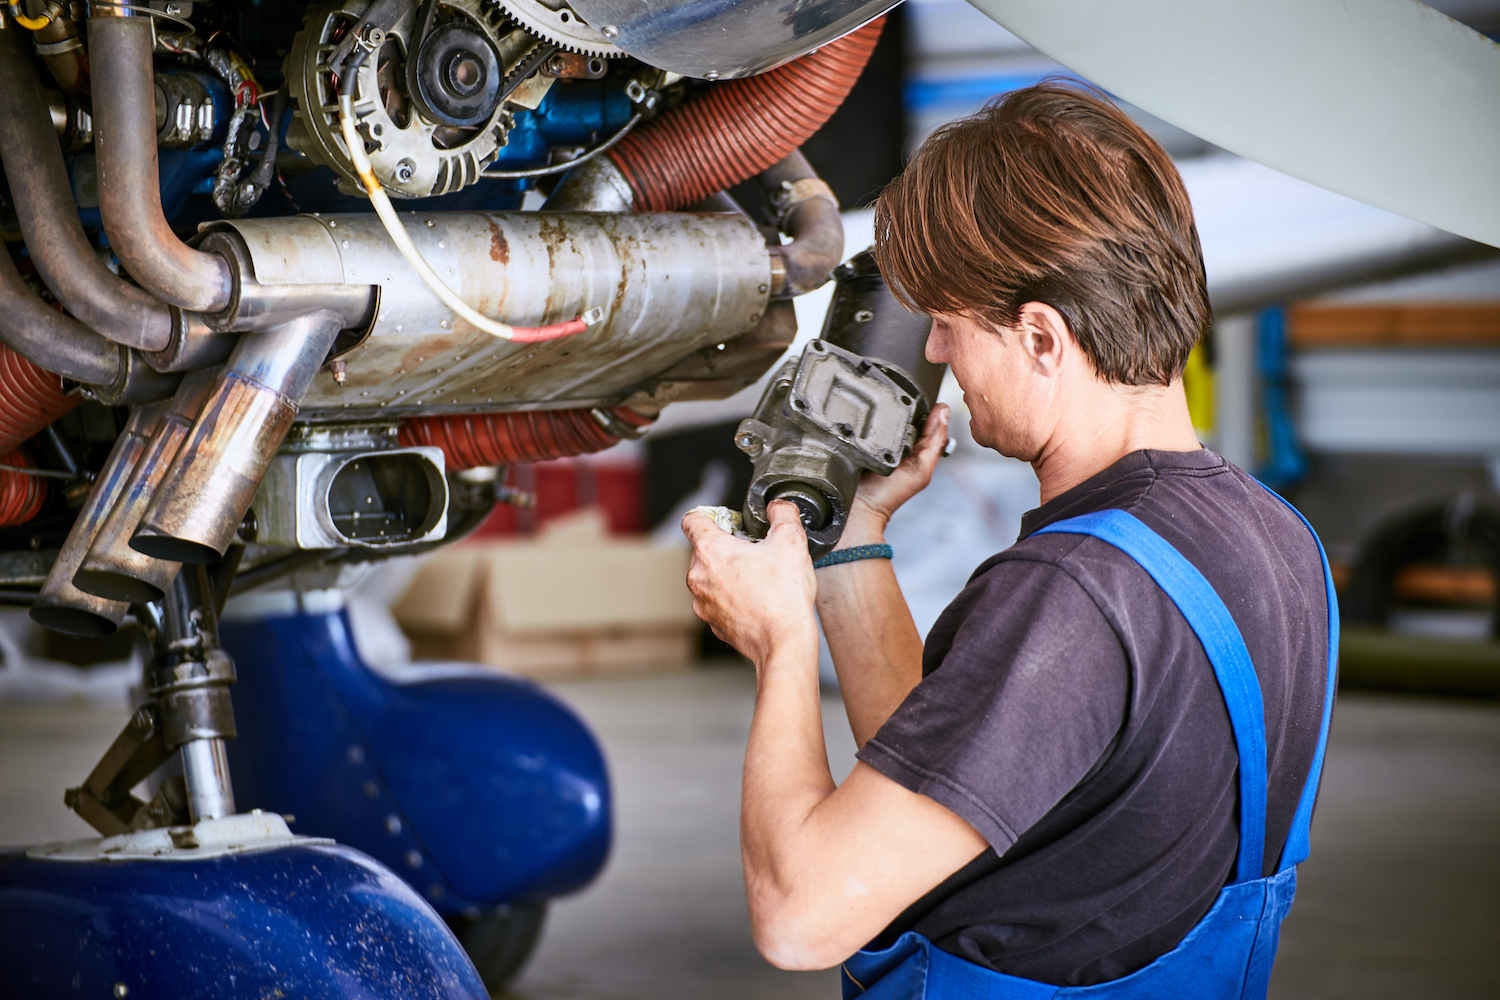 Removal and repair of an engine starter of an airplane by a service worker.